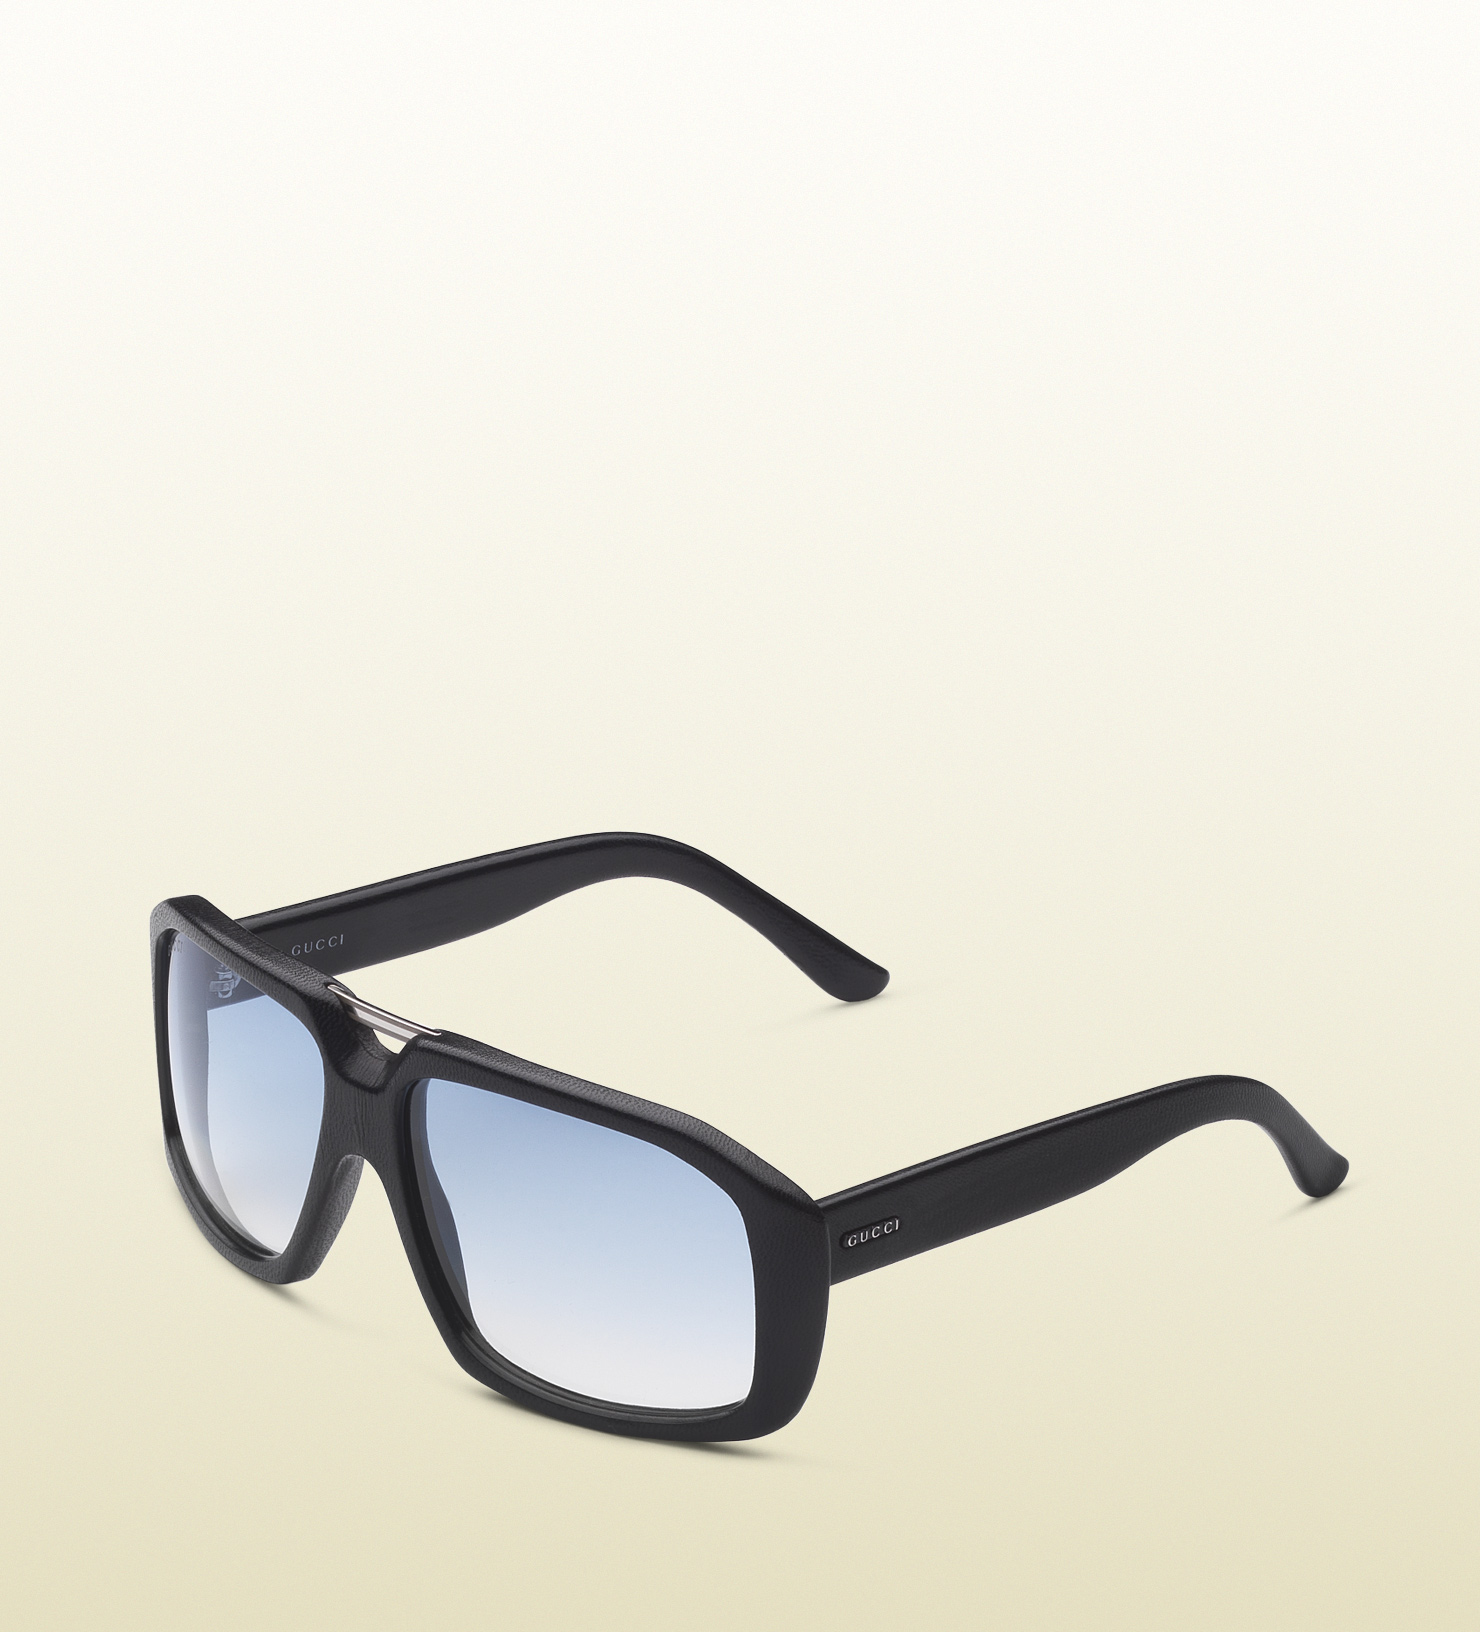 Gucci Rectangle Frame Sunglasses in Leather with Small ...